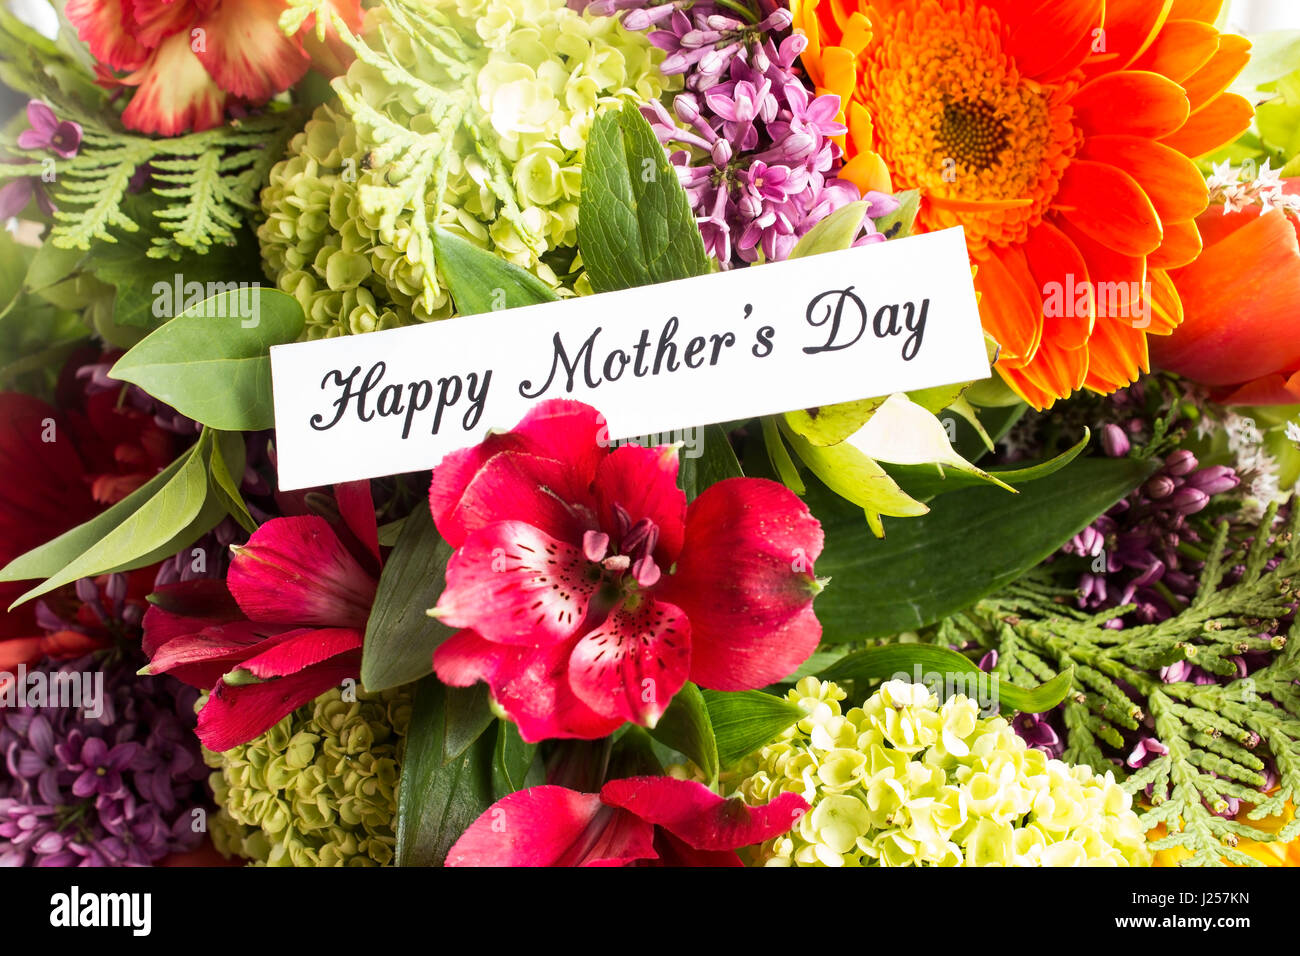 happy mothers day card flowers stock photos  happy mothers day, Natural flower